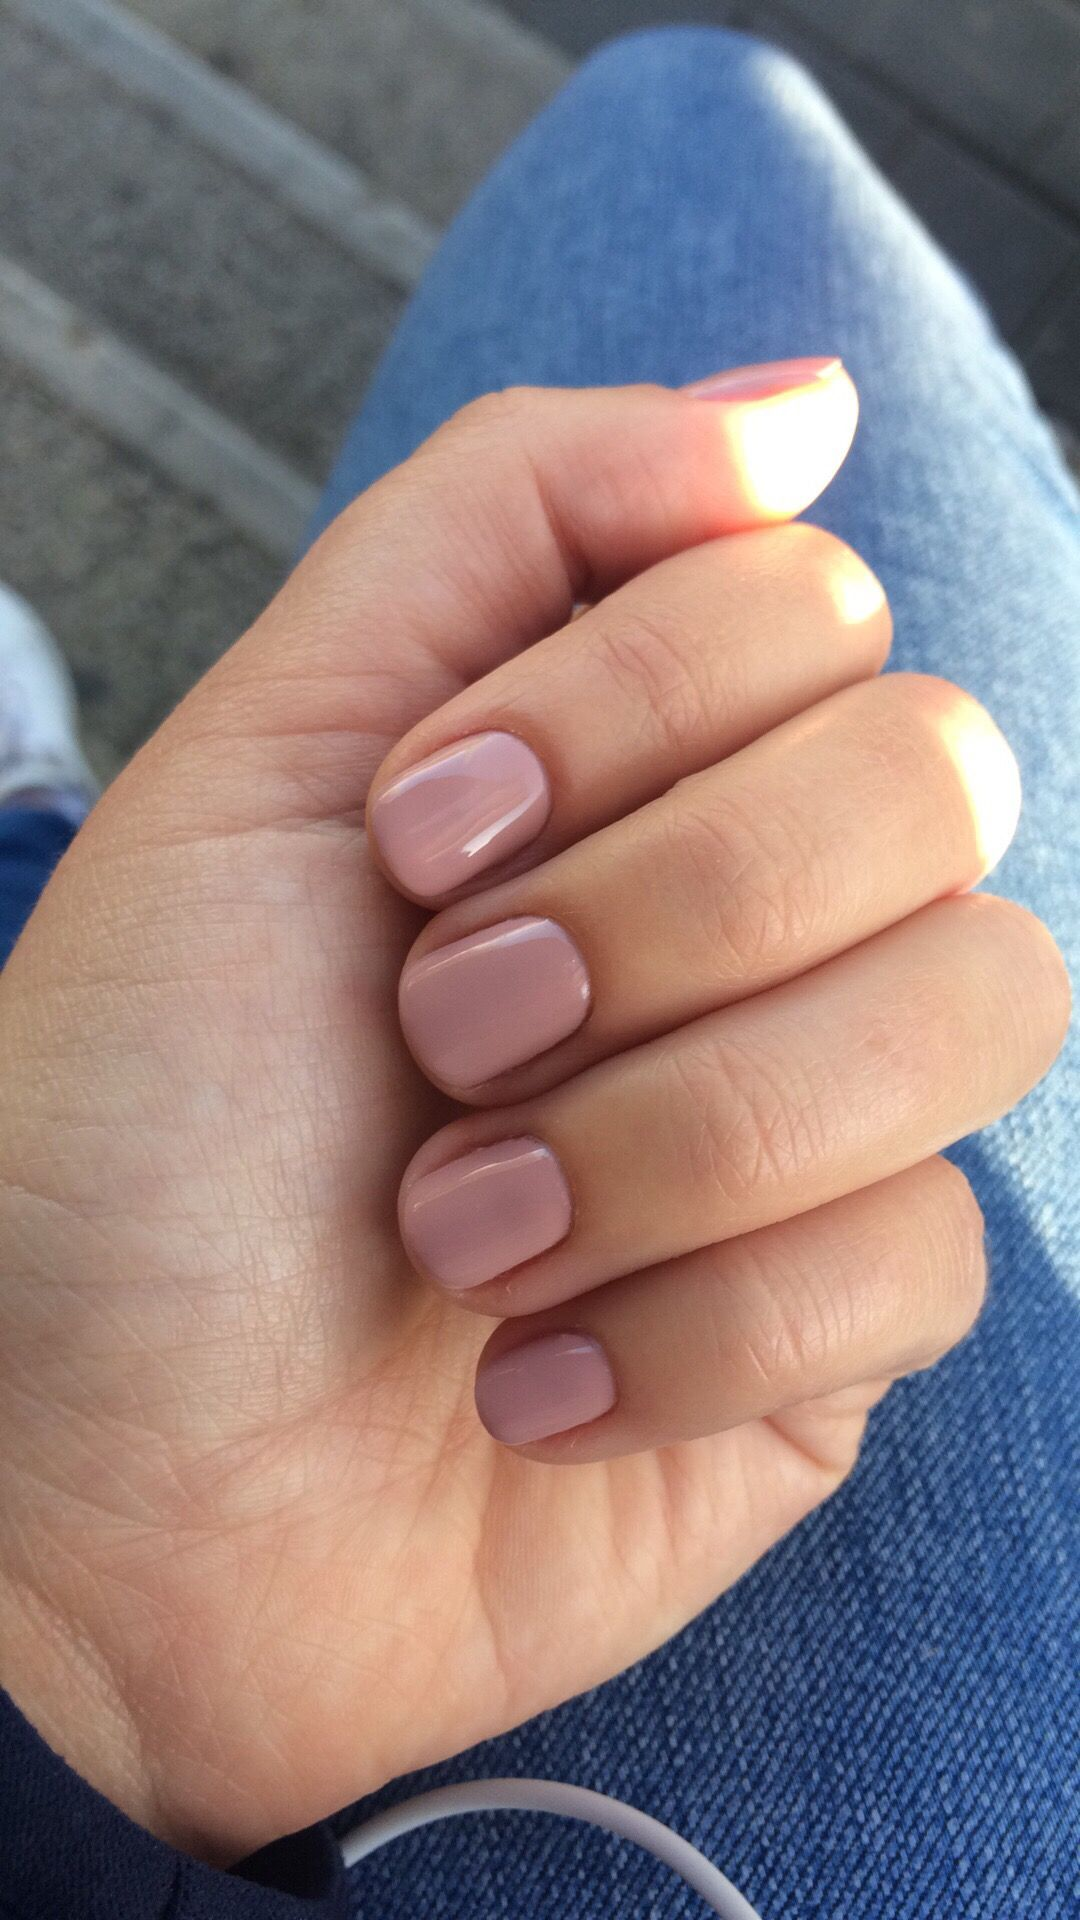 Pin by Nicole Rafer on nails  Pinterest  Nails Nail designs and